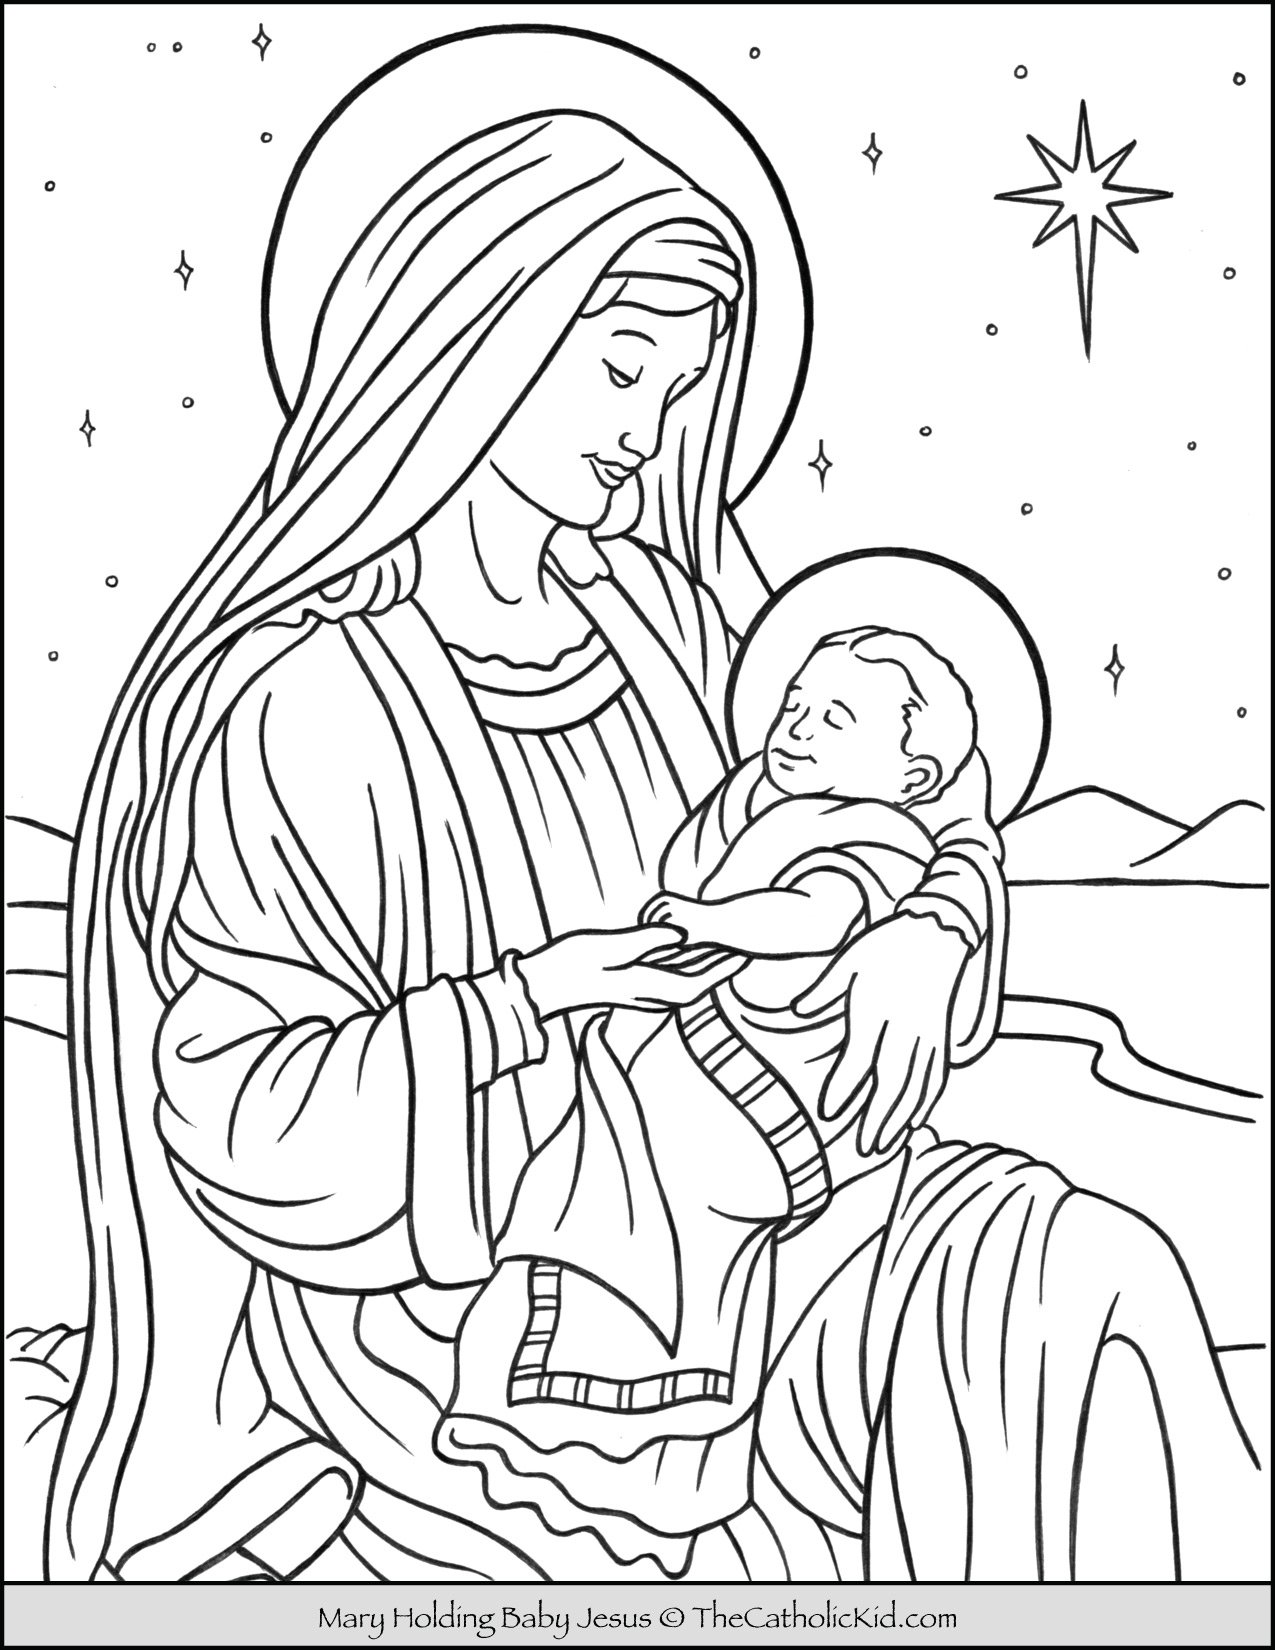 Mary With Baby Jesus in Bethlehem Coloring Page